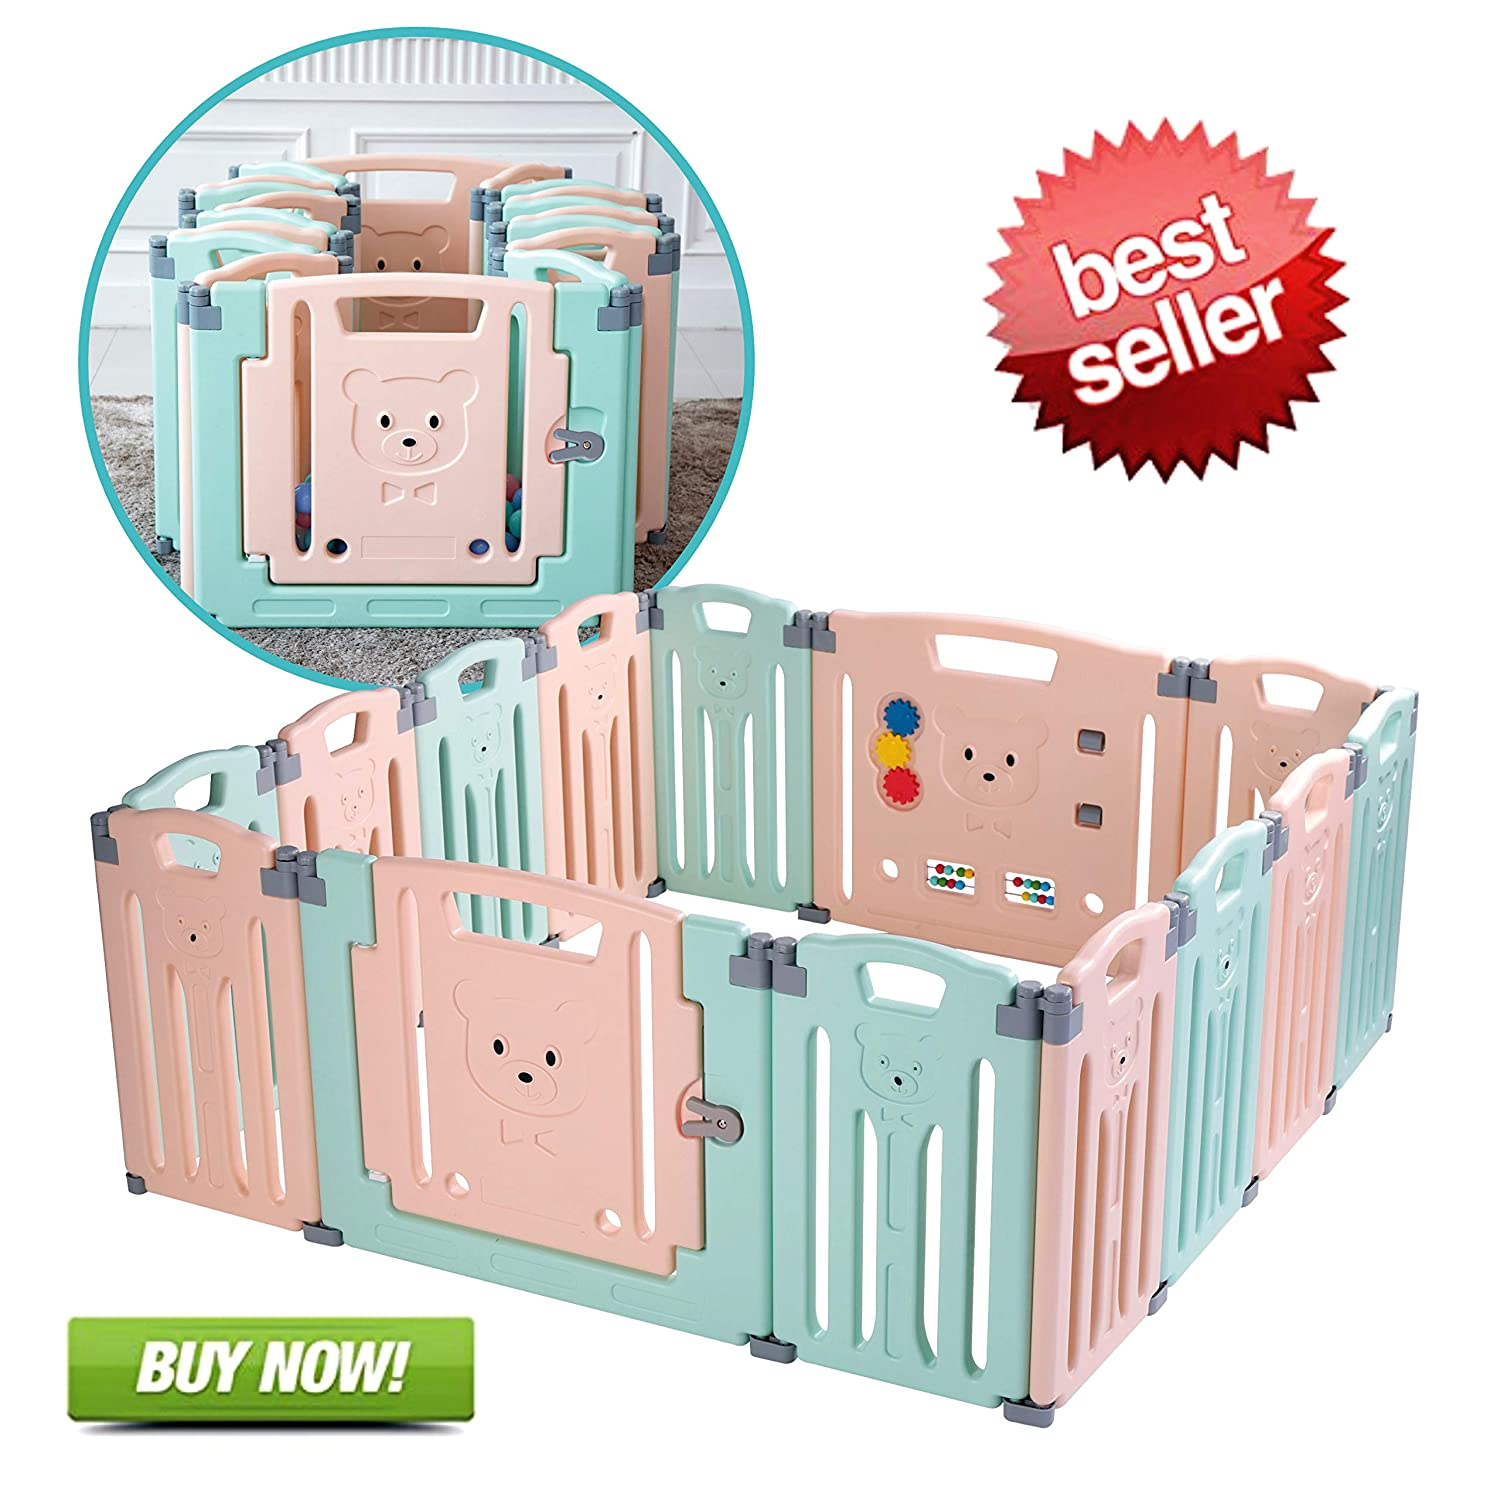 Baby Folding playpen Baby Playpen Kids Activity Centre Safety Play Yard Home Indoor Outdoor New Pen